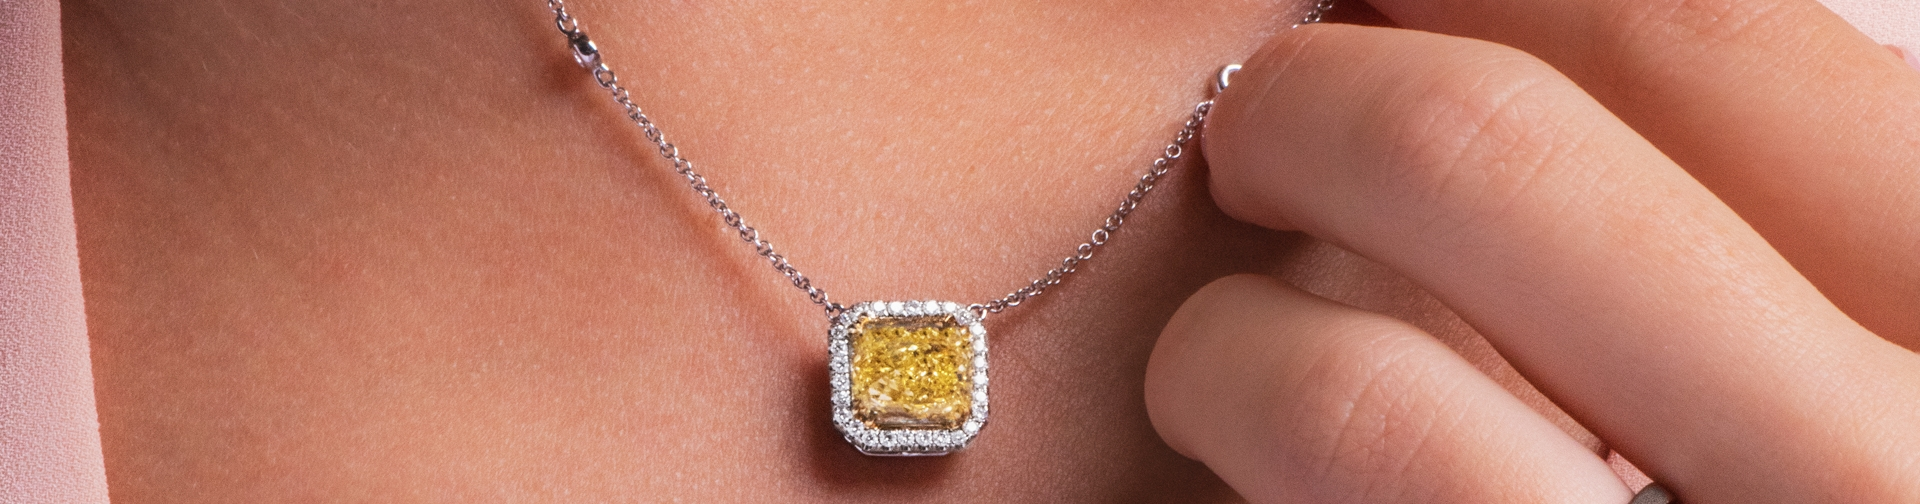 Colored Diamond Pendants and Necklaces